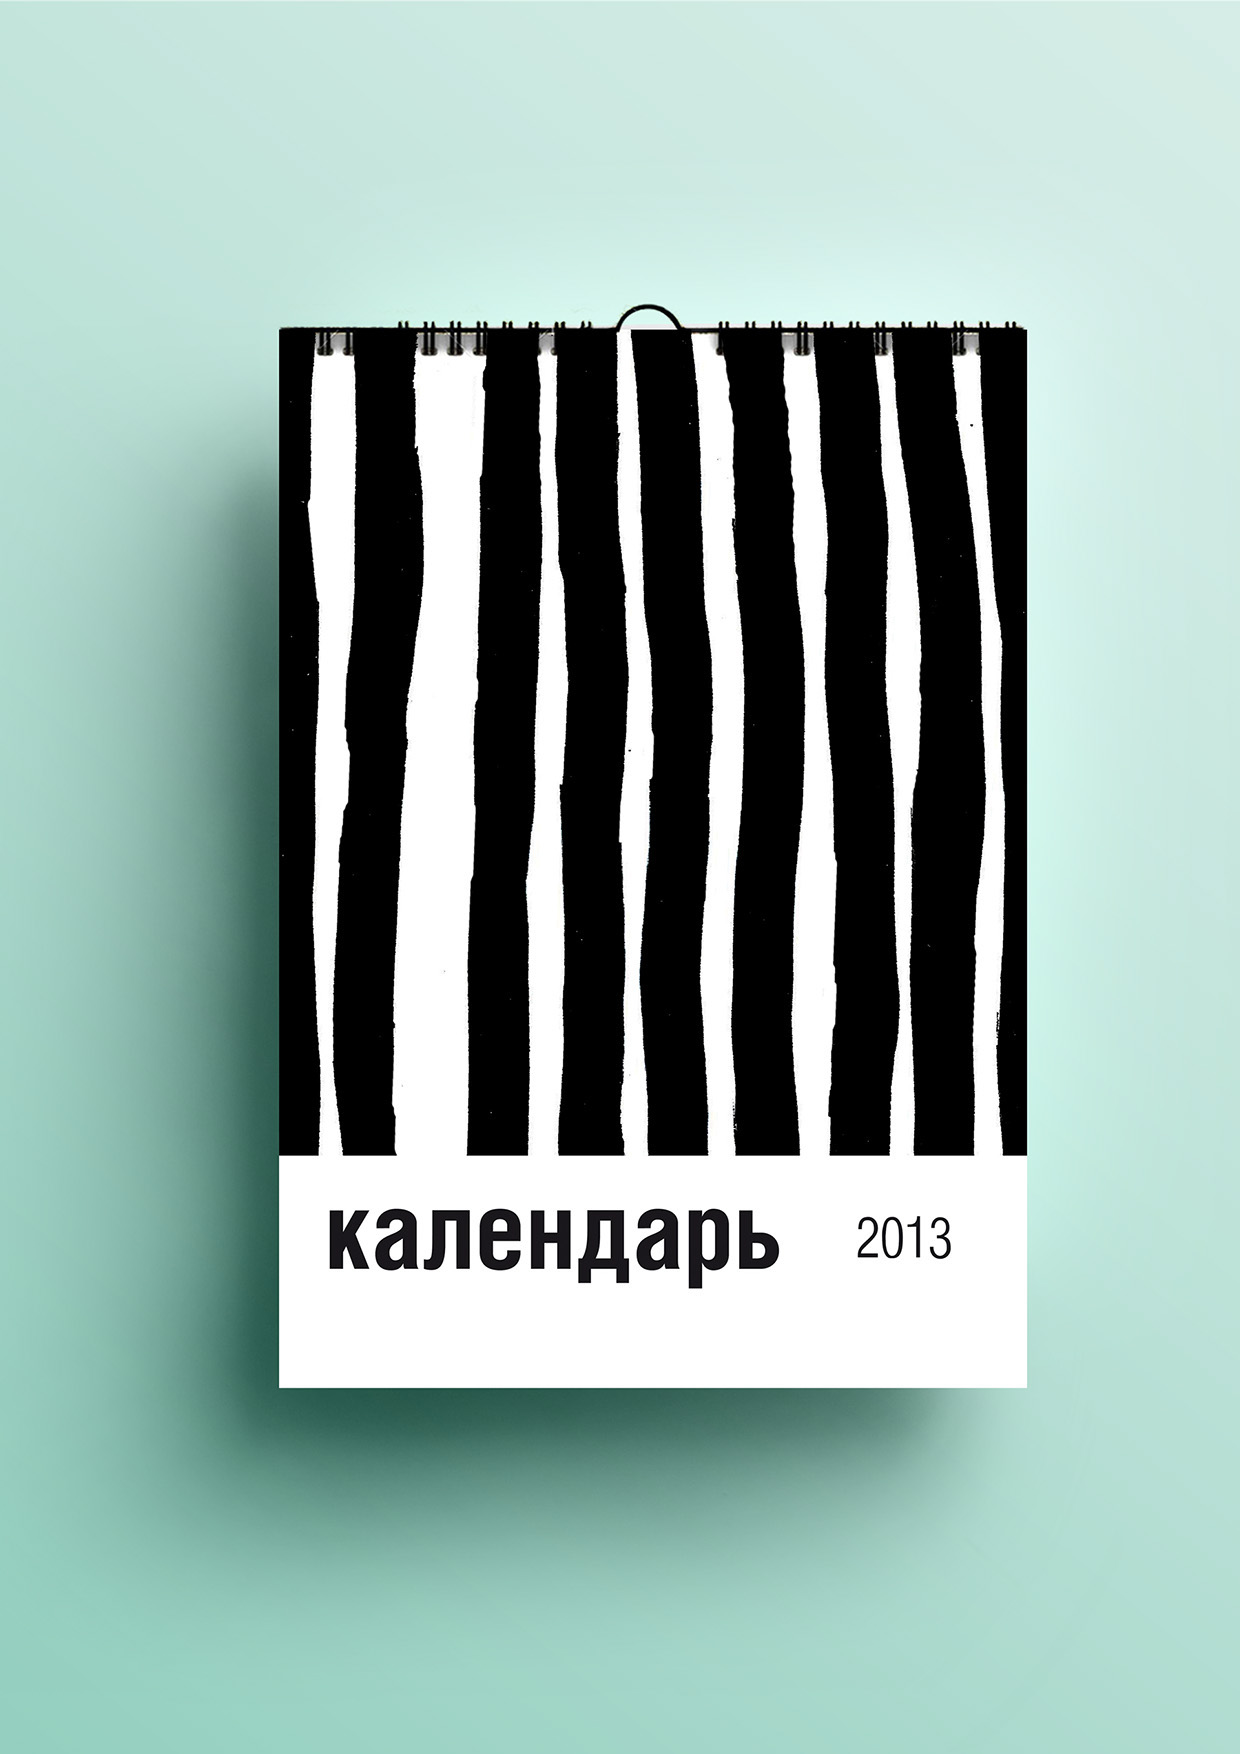 ink-graphic-calendar-yulya-plotnik1